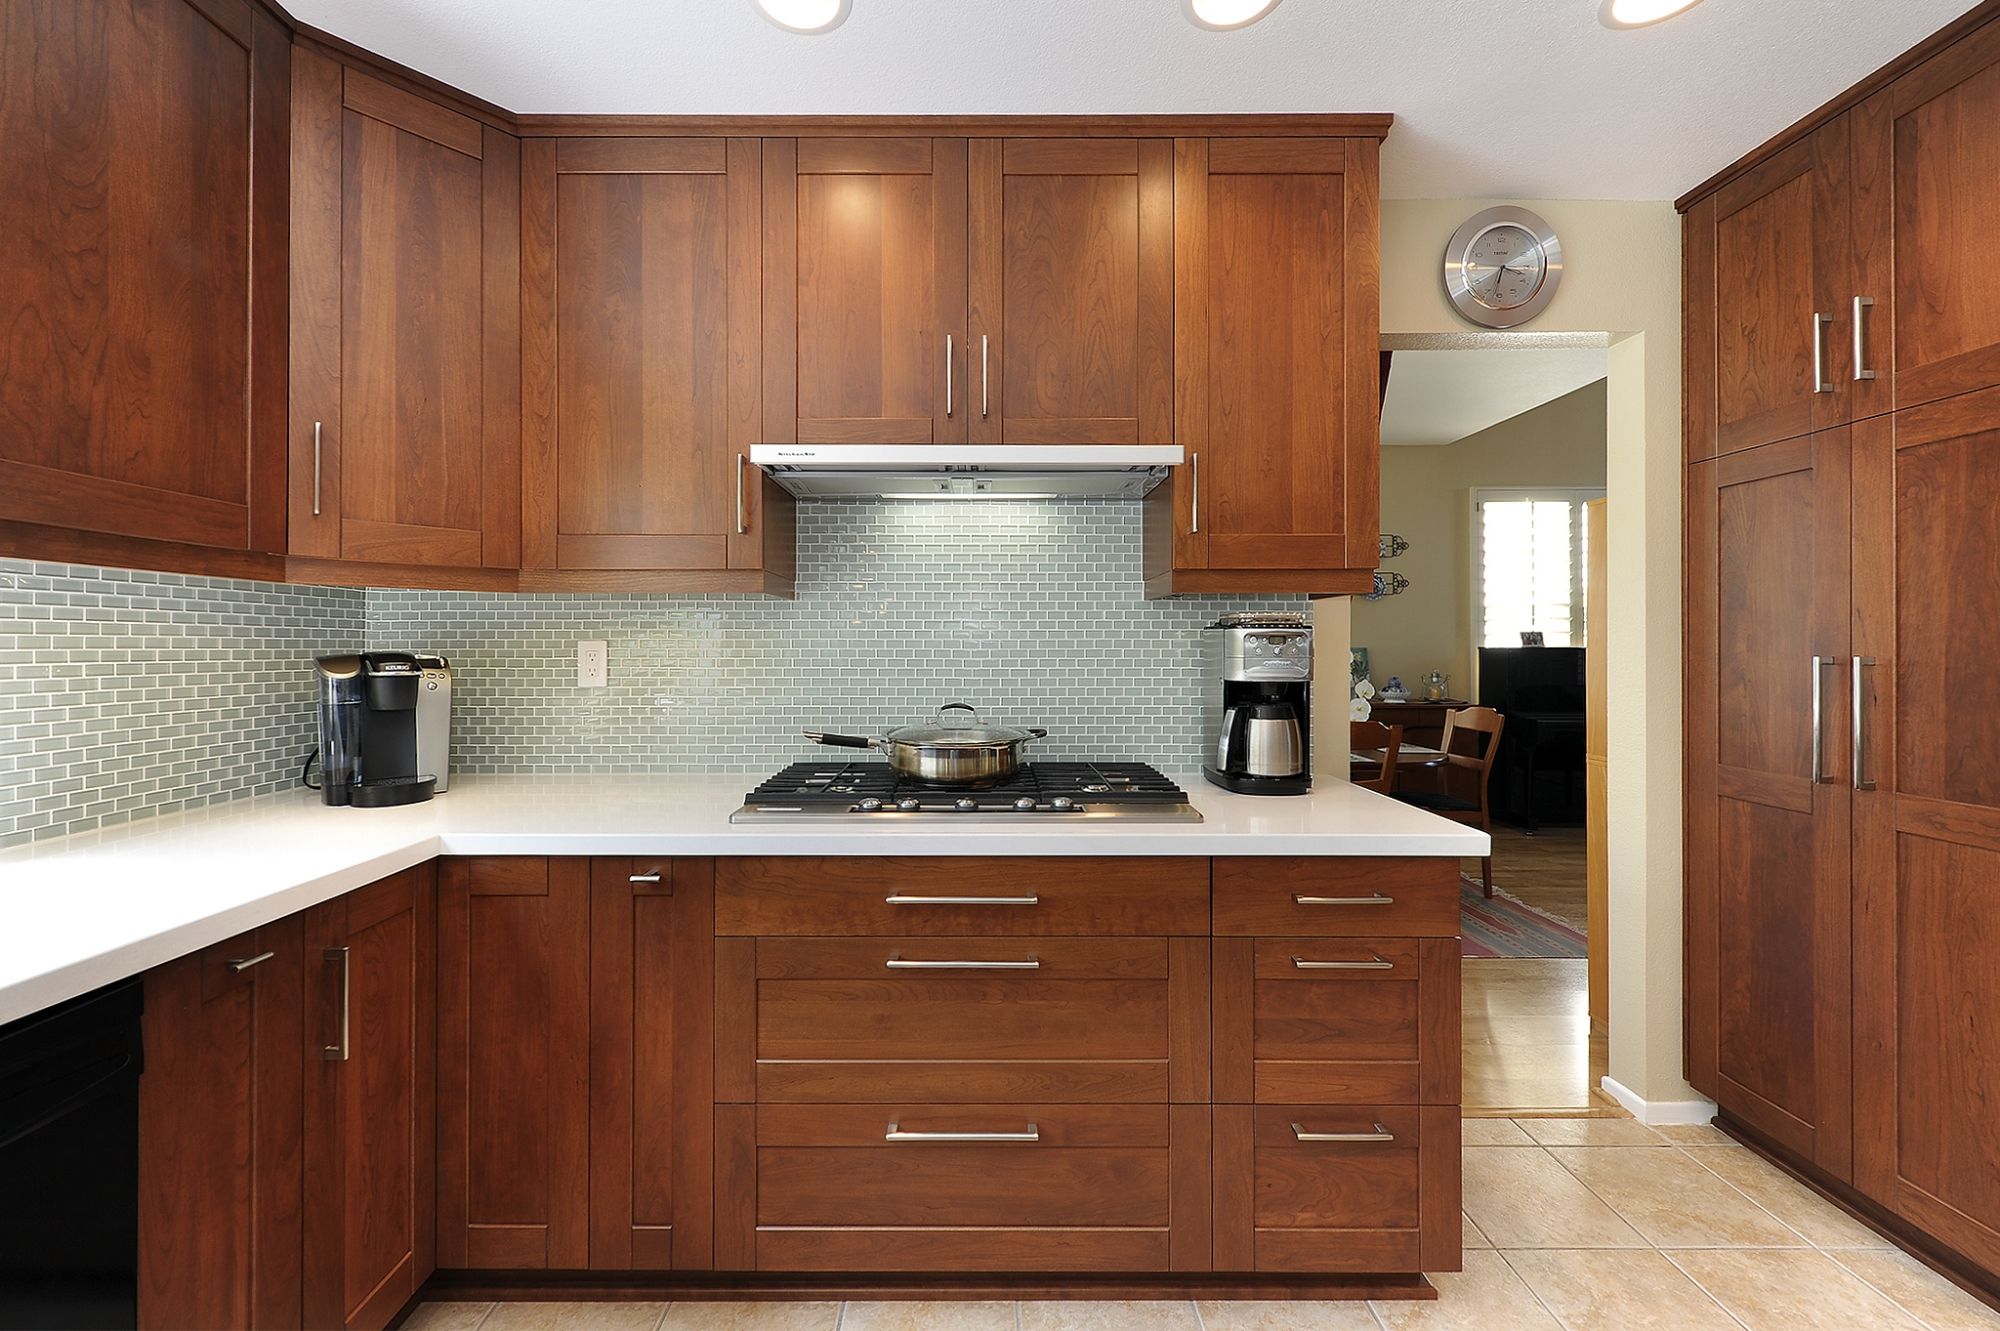 Wooden kitchen sets inspiration homesfeed for How to set up kitchen cabinets